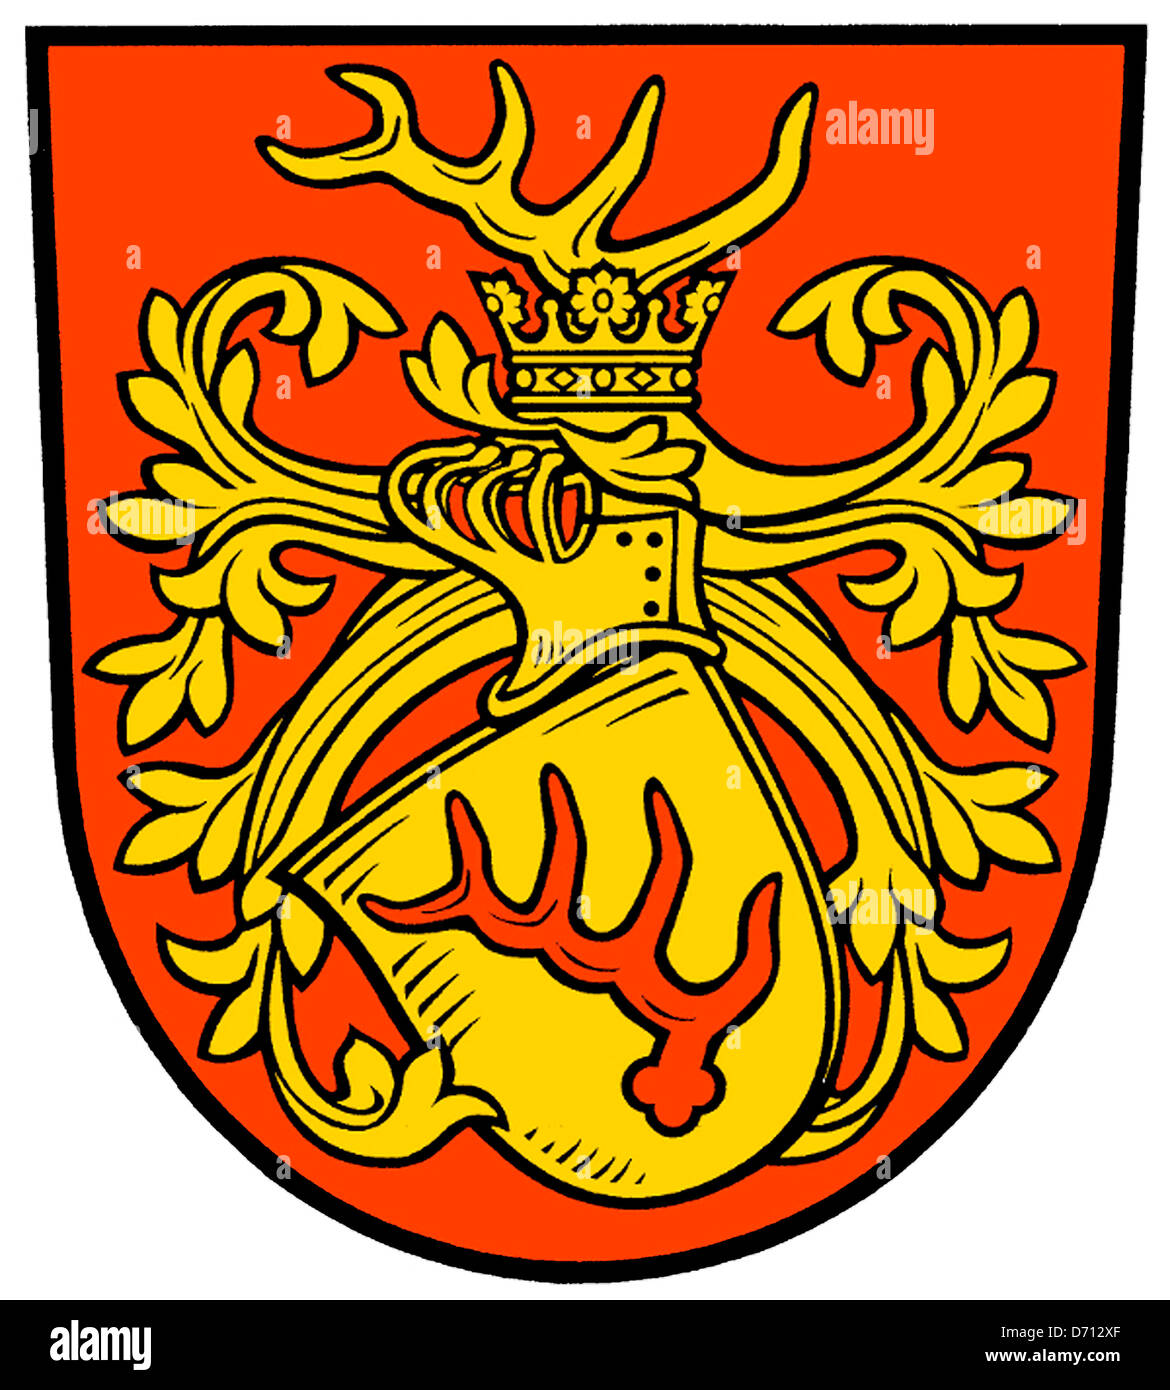 Coat of arms of the German city Forst in Brandenburg. - Stock Image